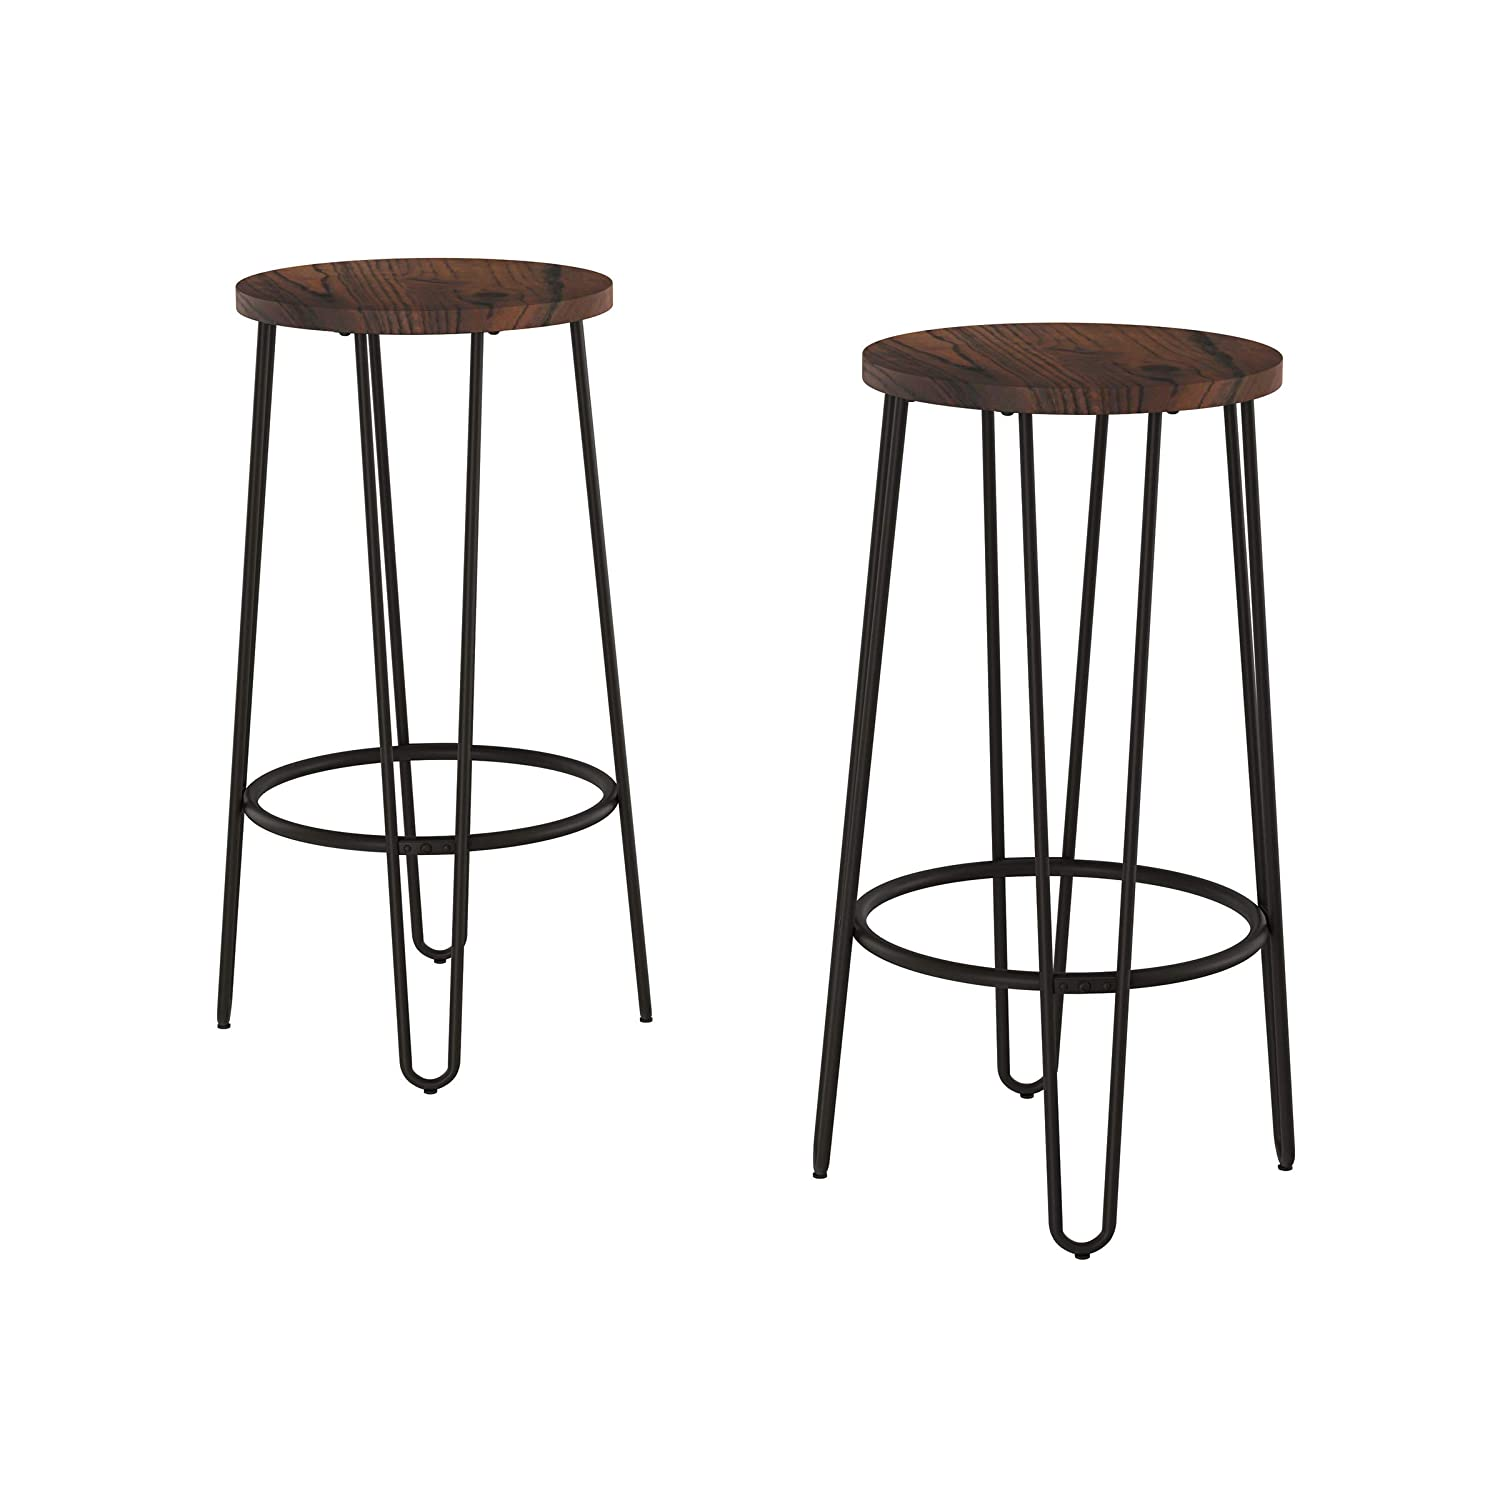 Incredible Amazon Com Lavish Home Bar Height Stools Backless Barstools Gmtry Best Dining Table And Chair Ideas Images Gmtryco